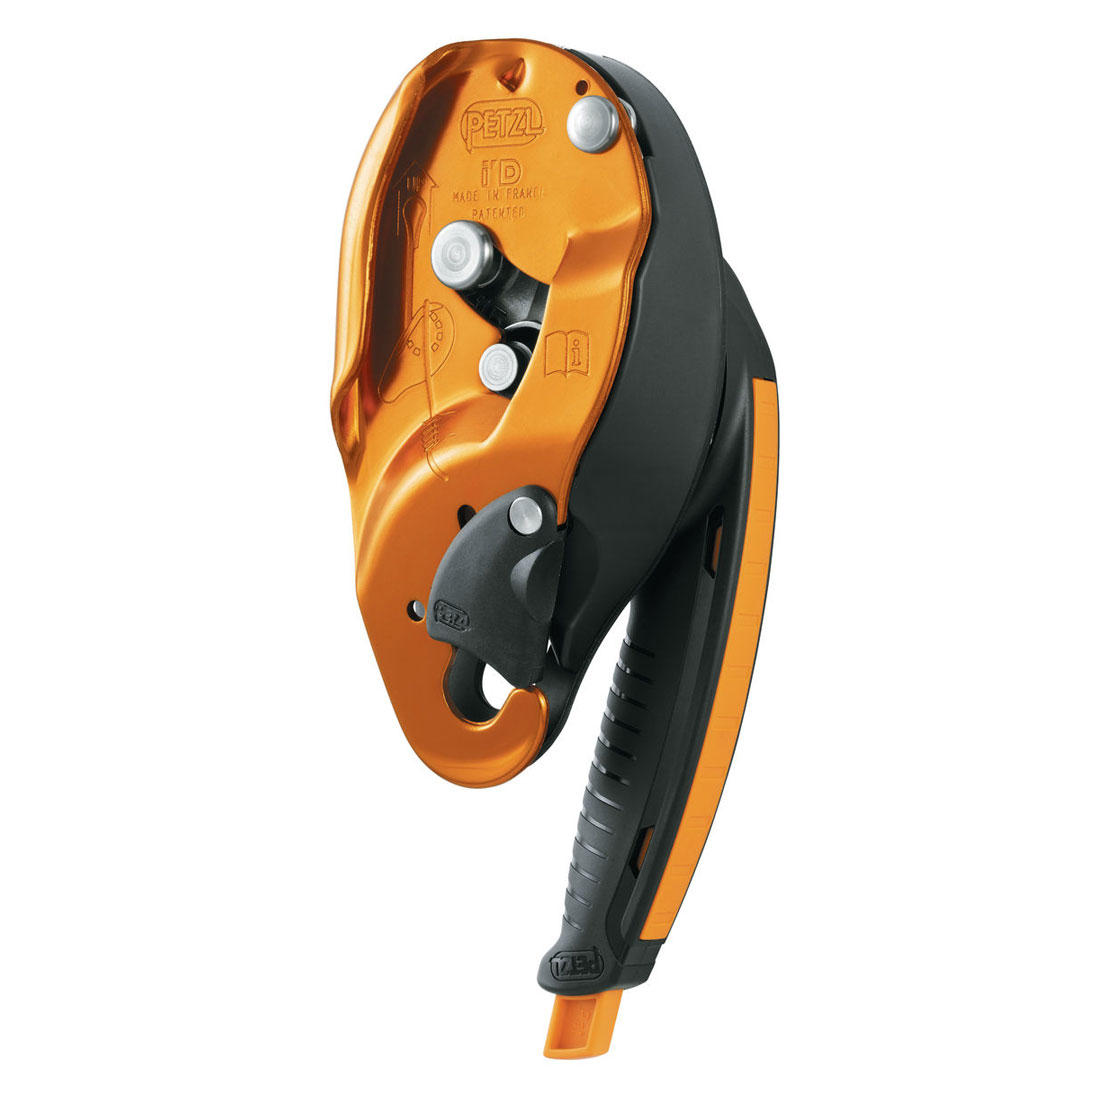 Petzl ID descender